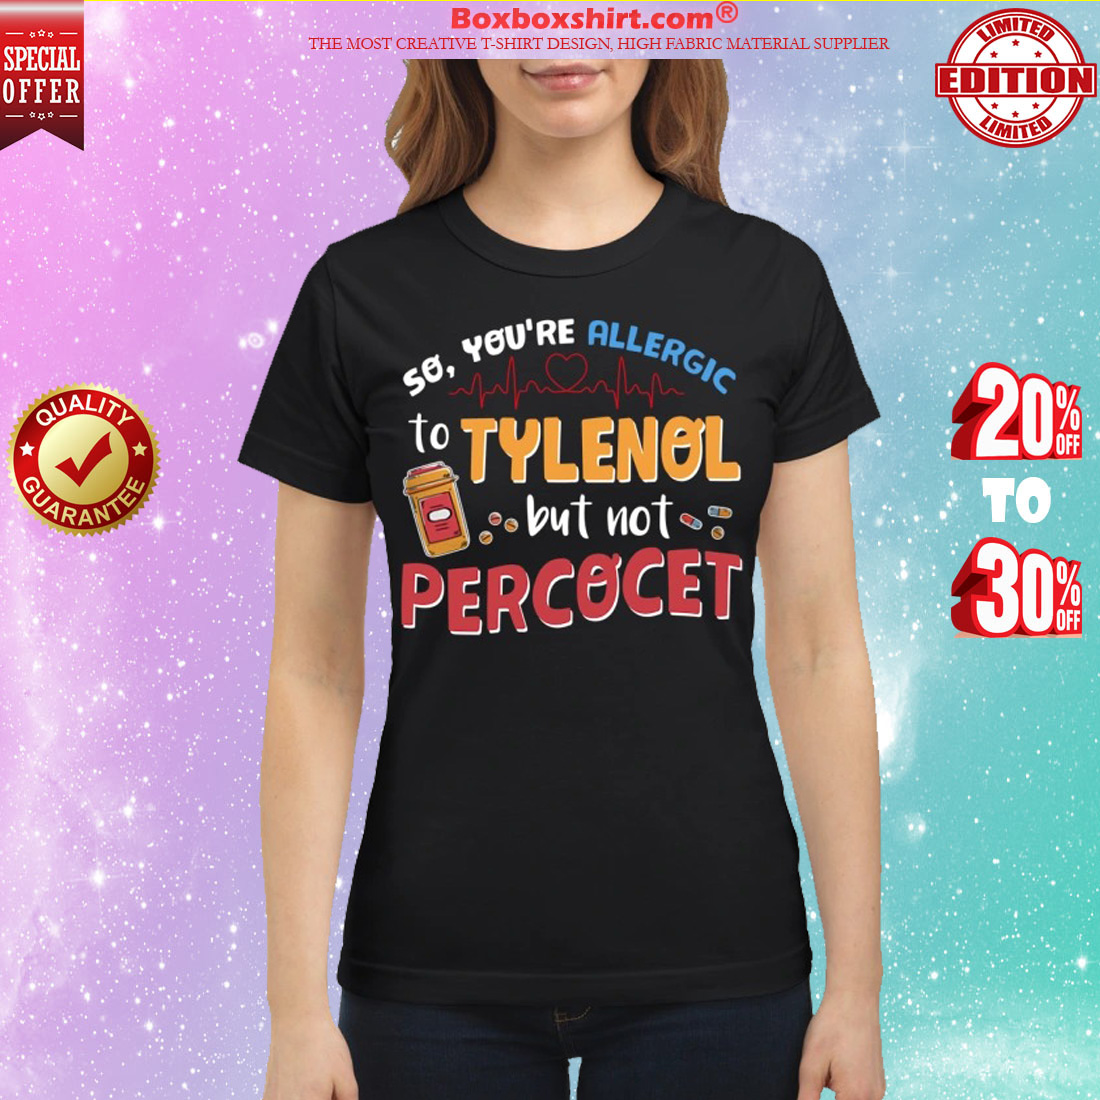 You're allergic to tylenol but not percocet classic shirt